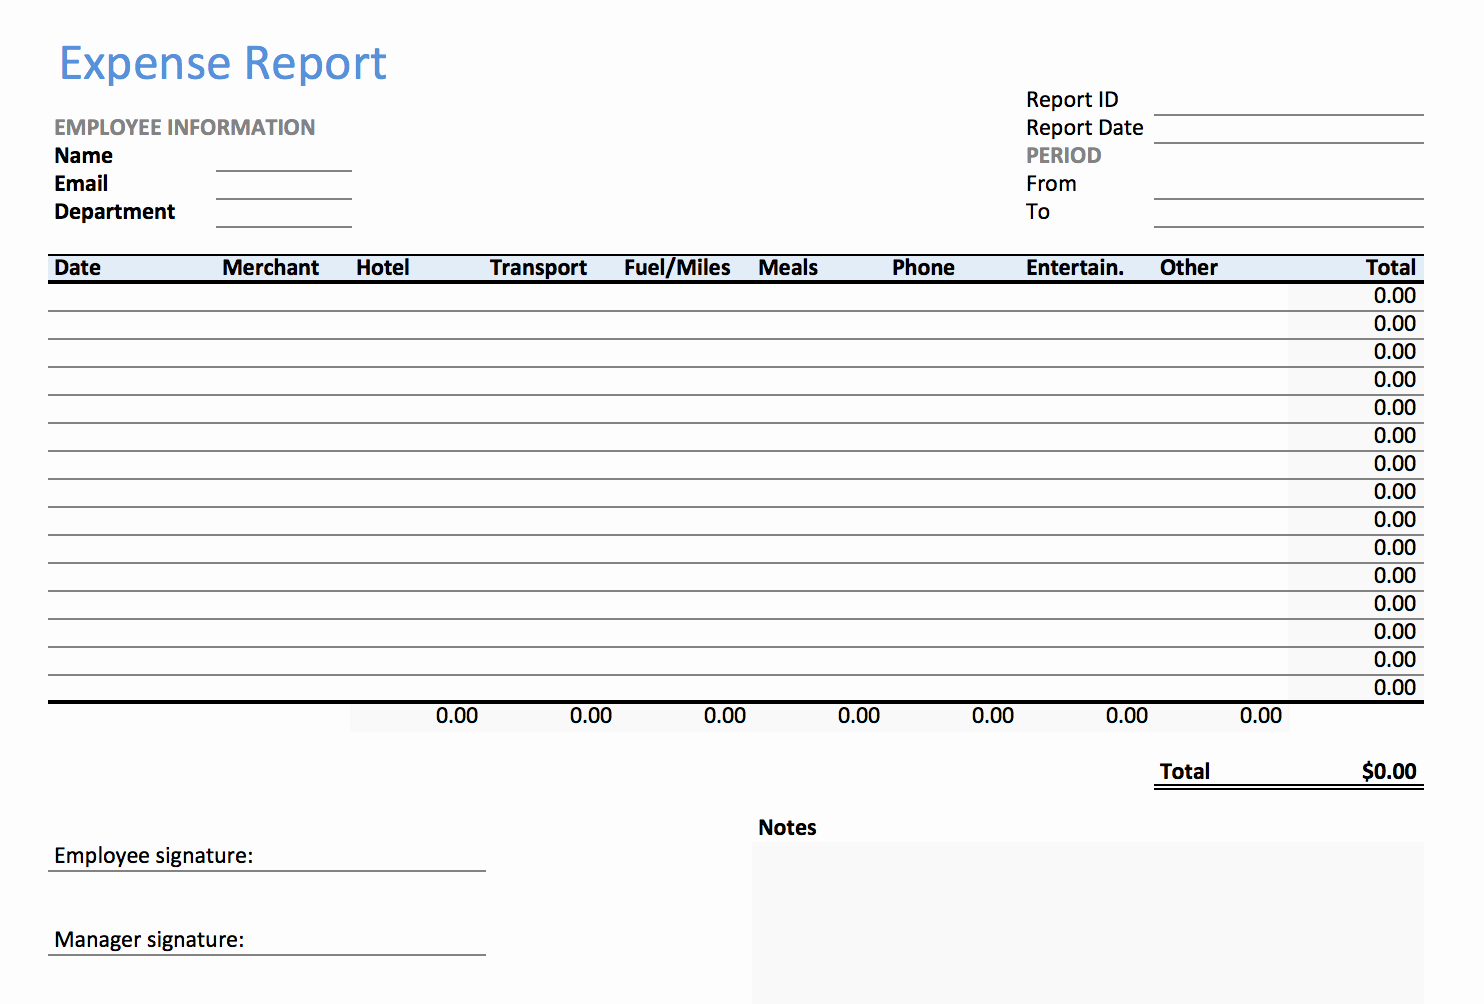 Excel Expense Report Template Unique Excel Expense Report Template Keepek